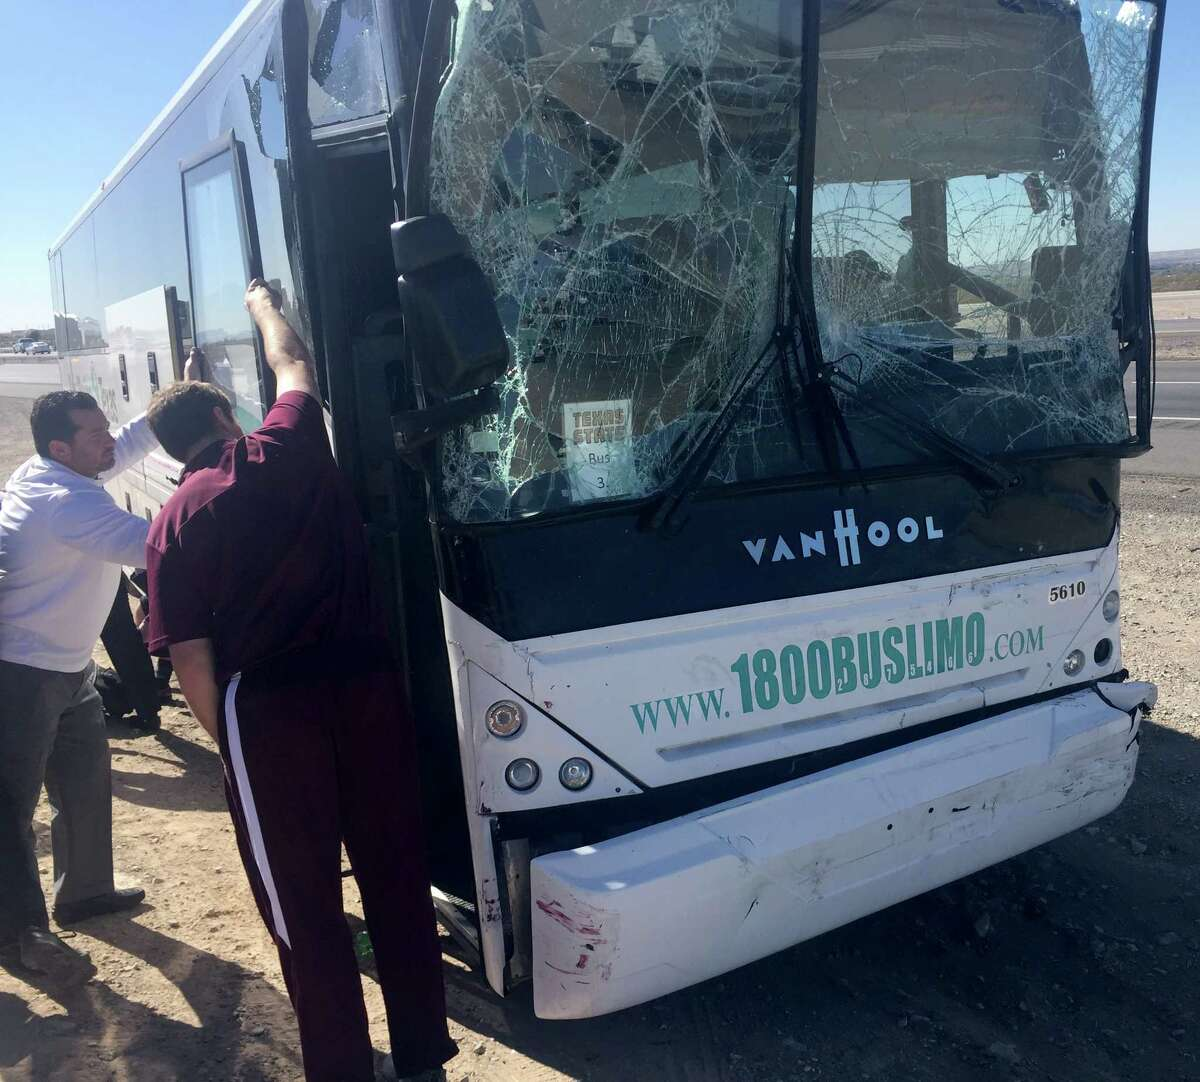 Texas State officials stand at the doorway to one of three charter busses damaged in Saturday's accident on the Texas and New Mexico border. Five people were transported to an area hospital. The busses, carrying the Texas State football team, cheerleaders and support staff was en route to a football game at New Mexico State.